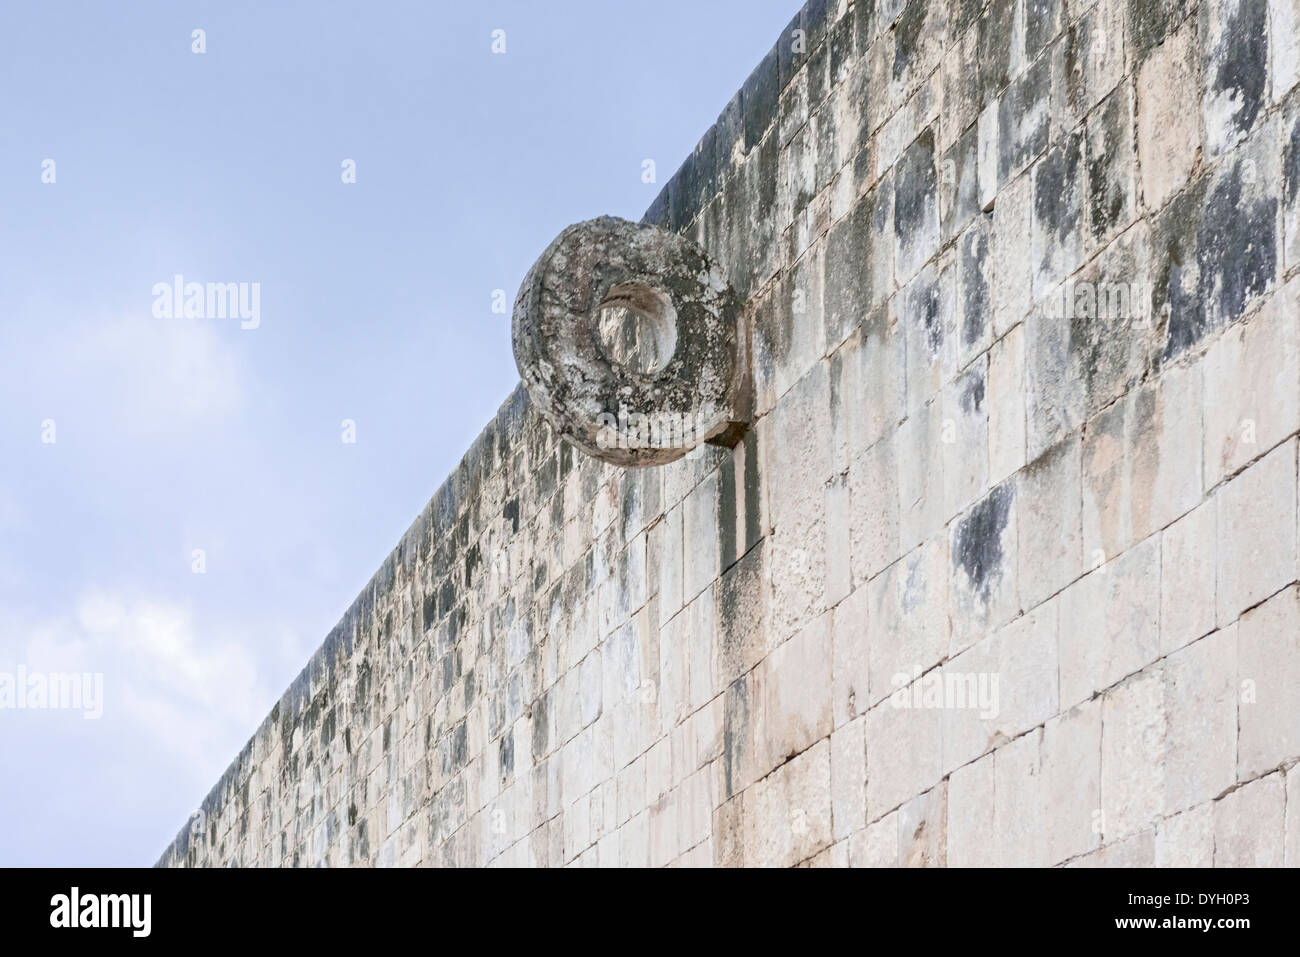 Stone Ring located 9 m (30 ft) above the floor of the Great Ballcourt, in Chichen Itza, Mexico. - Stock Image